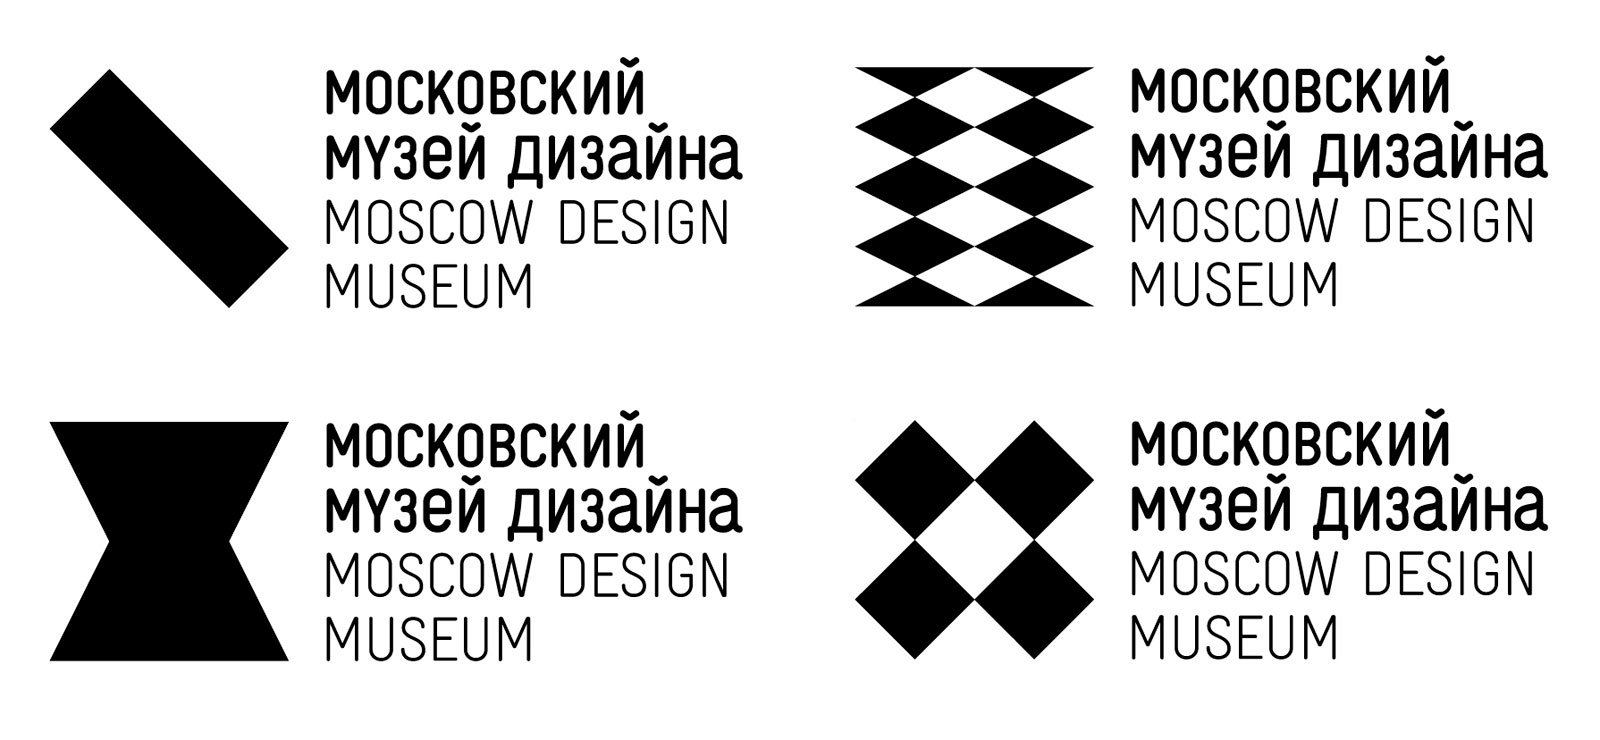 moscow-design-museum